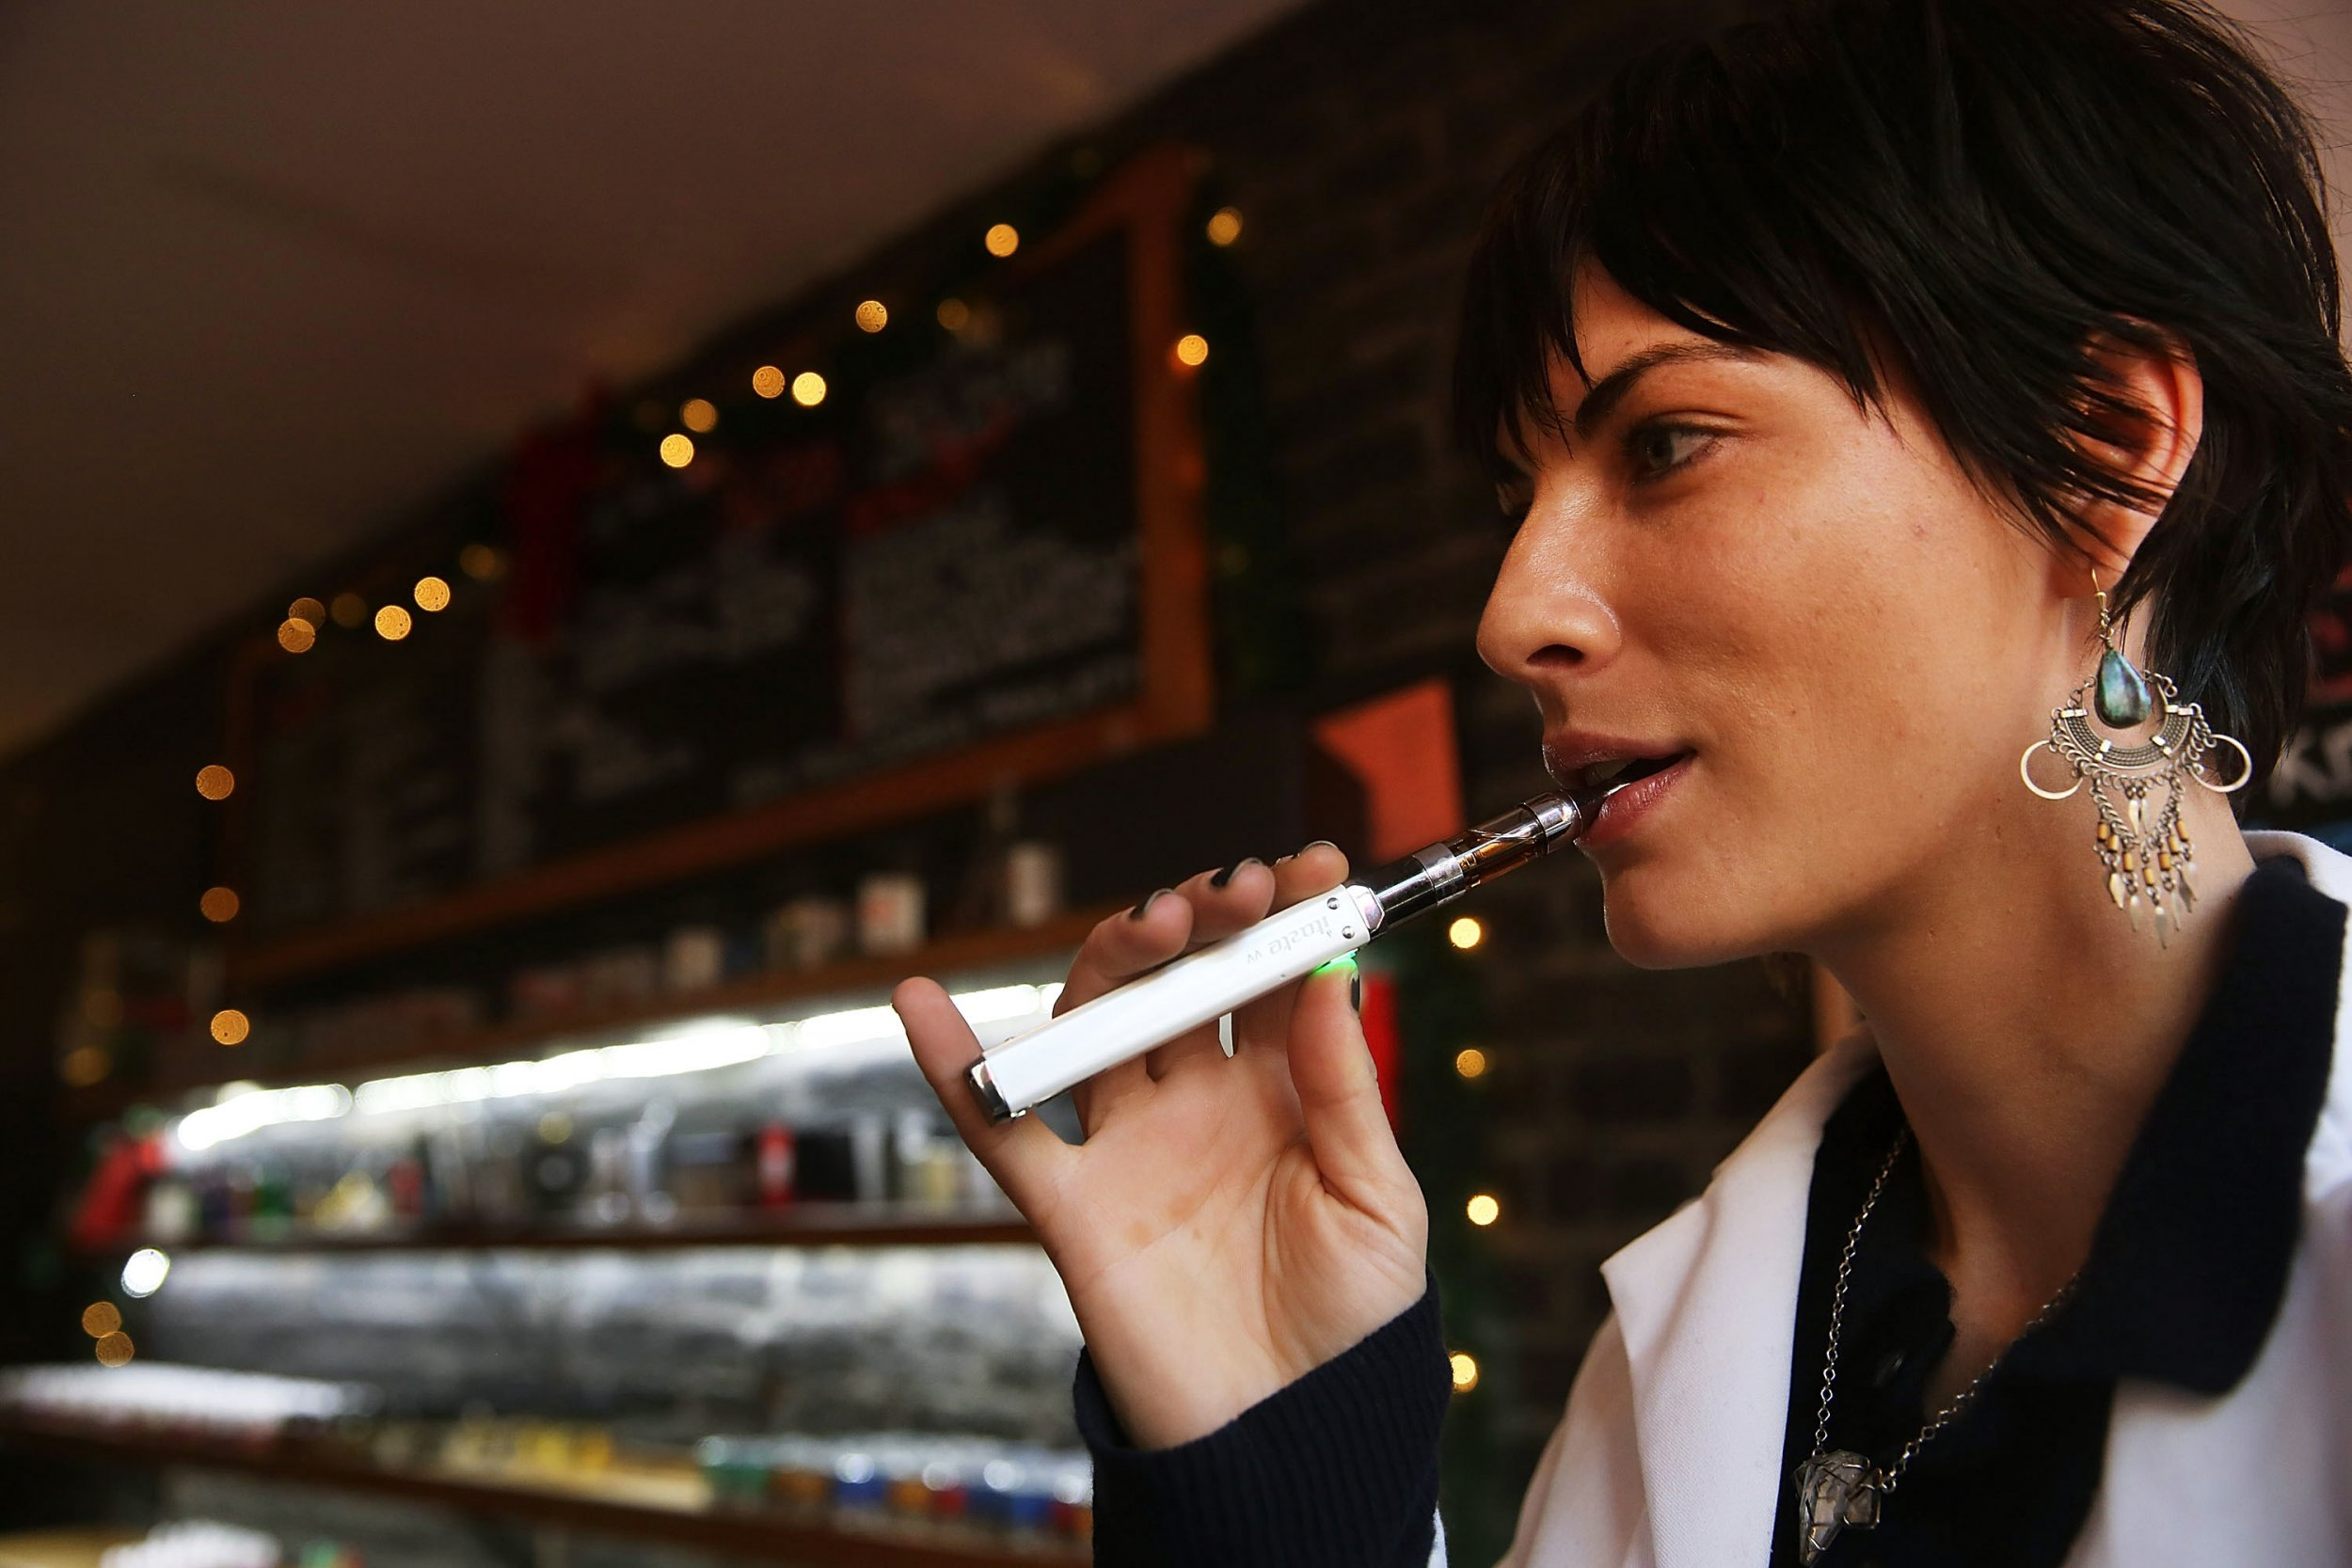 Puffing Just One E-Cigarette With Nicotine Can Damage Your Heart